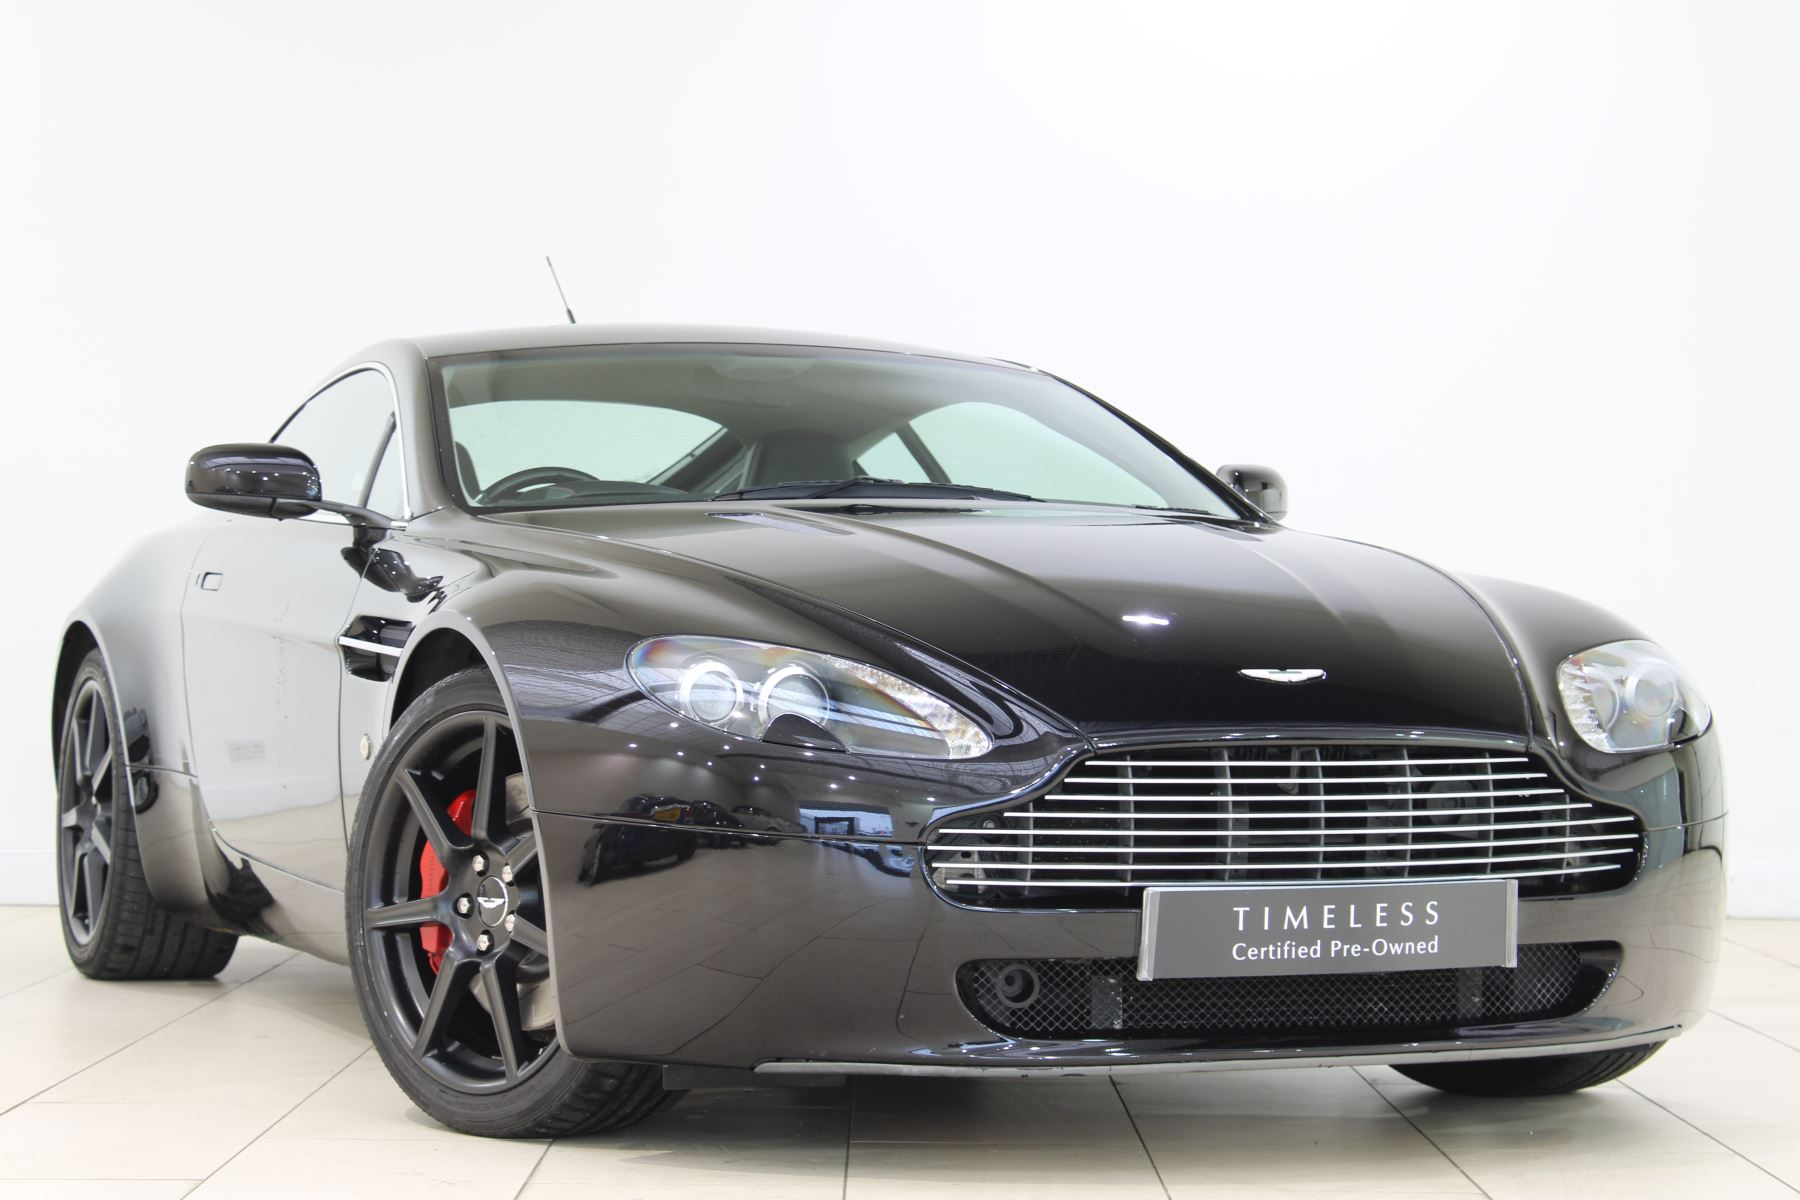 Aston Martin V8 Vantage Coupe MANUAL 2dr 4.3 3 door Coupe (2006)